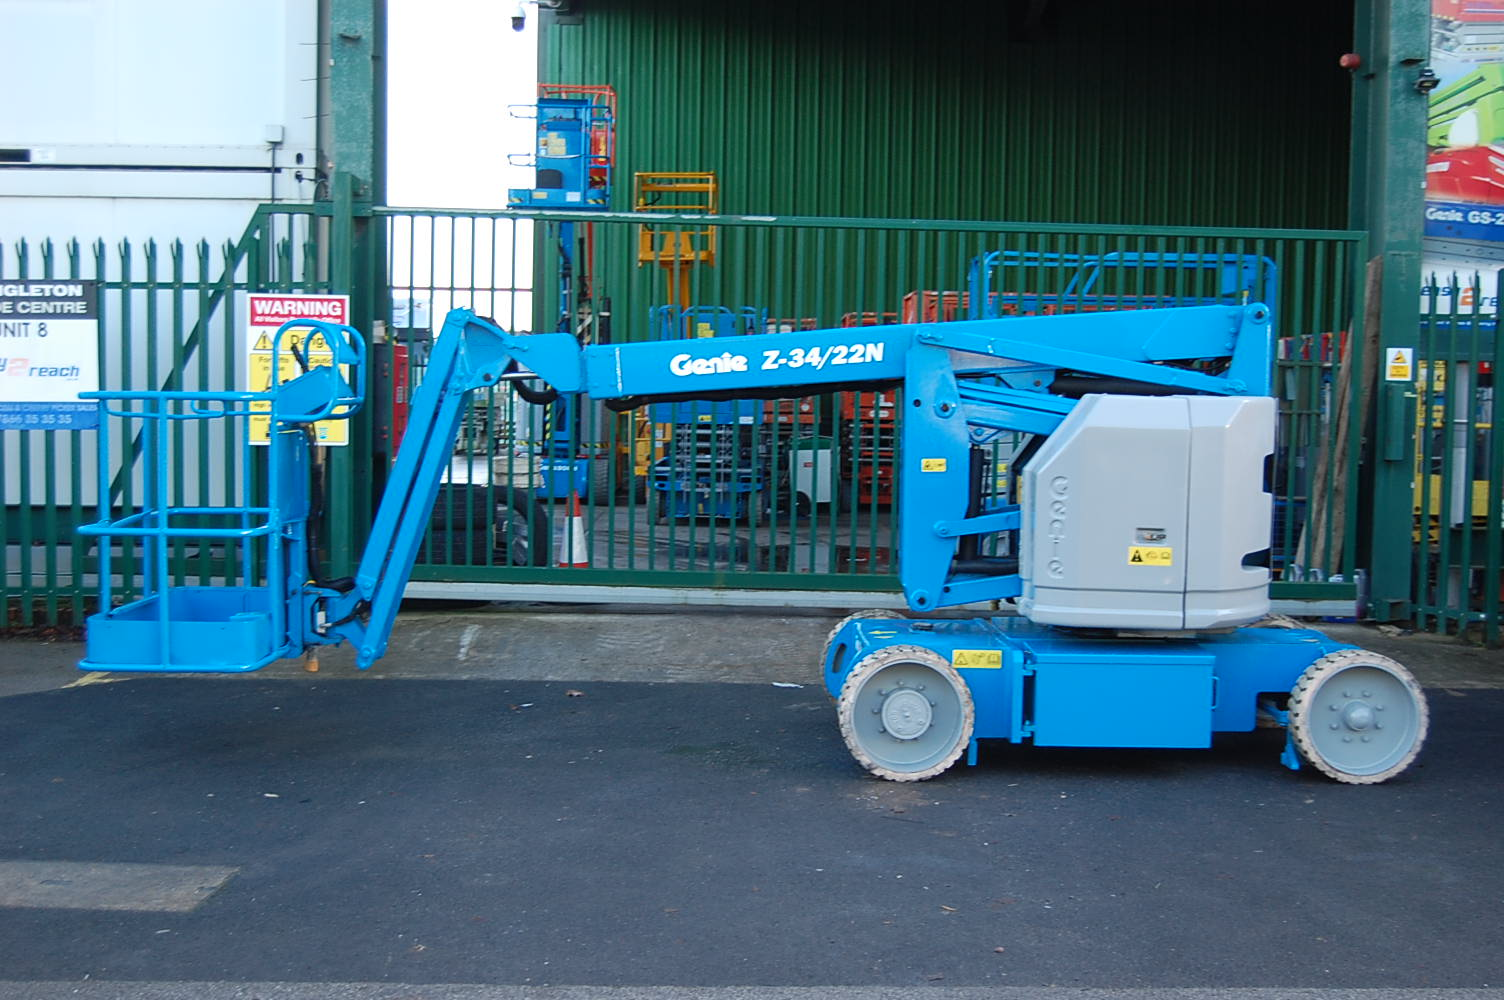 2005 Genie Z34/22N Electric Boom Lift 12.5m